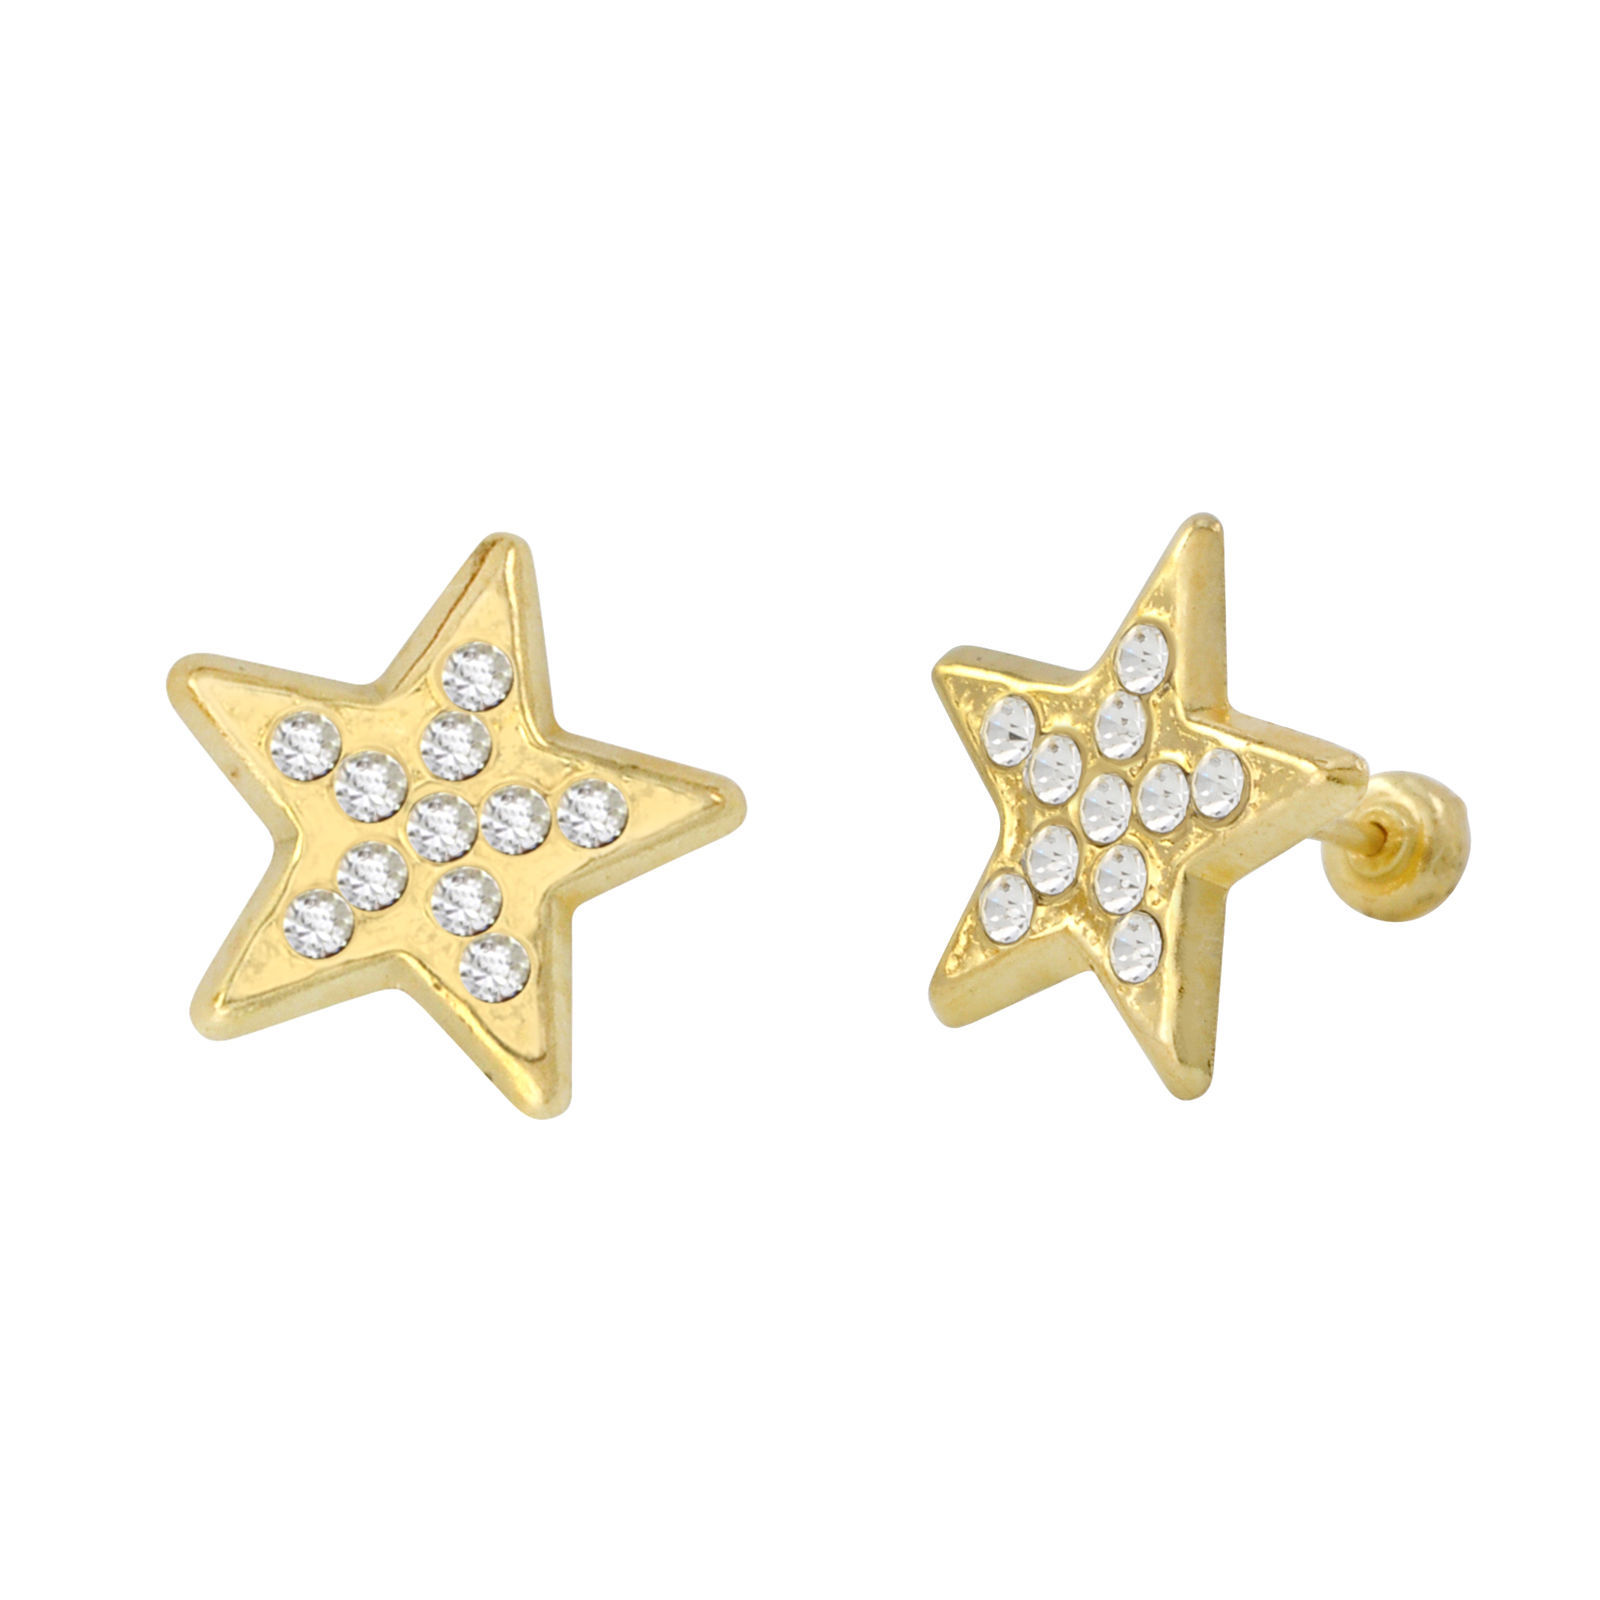 Primary image for Star Stud Earrings 10k Yellow Gold Pave Cubic Zirconia with Screwbacks 10x10